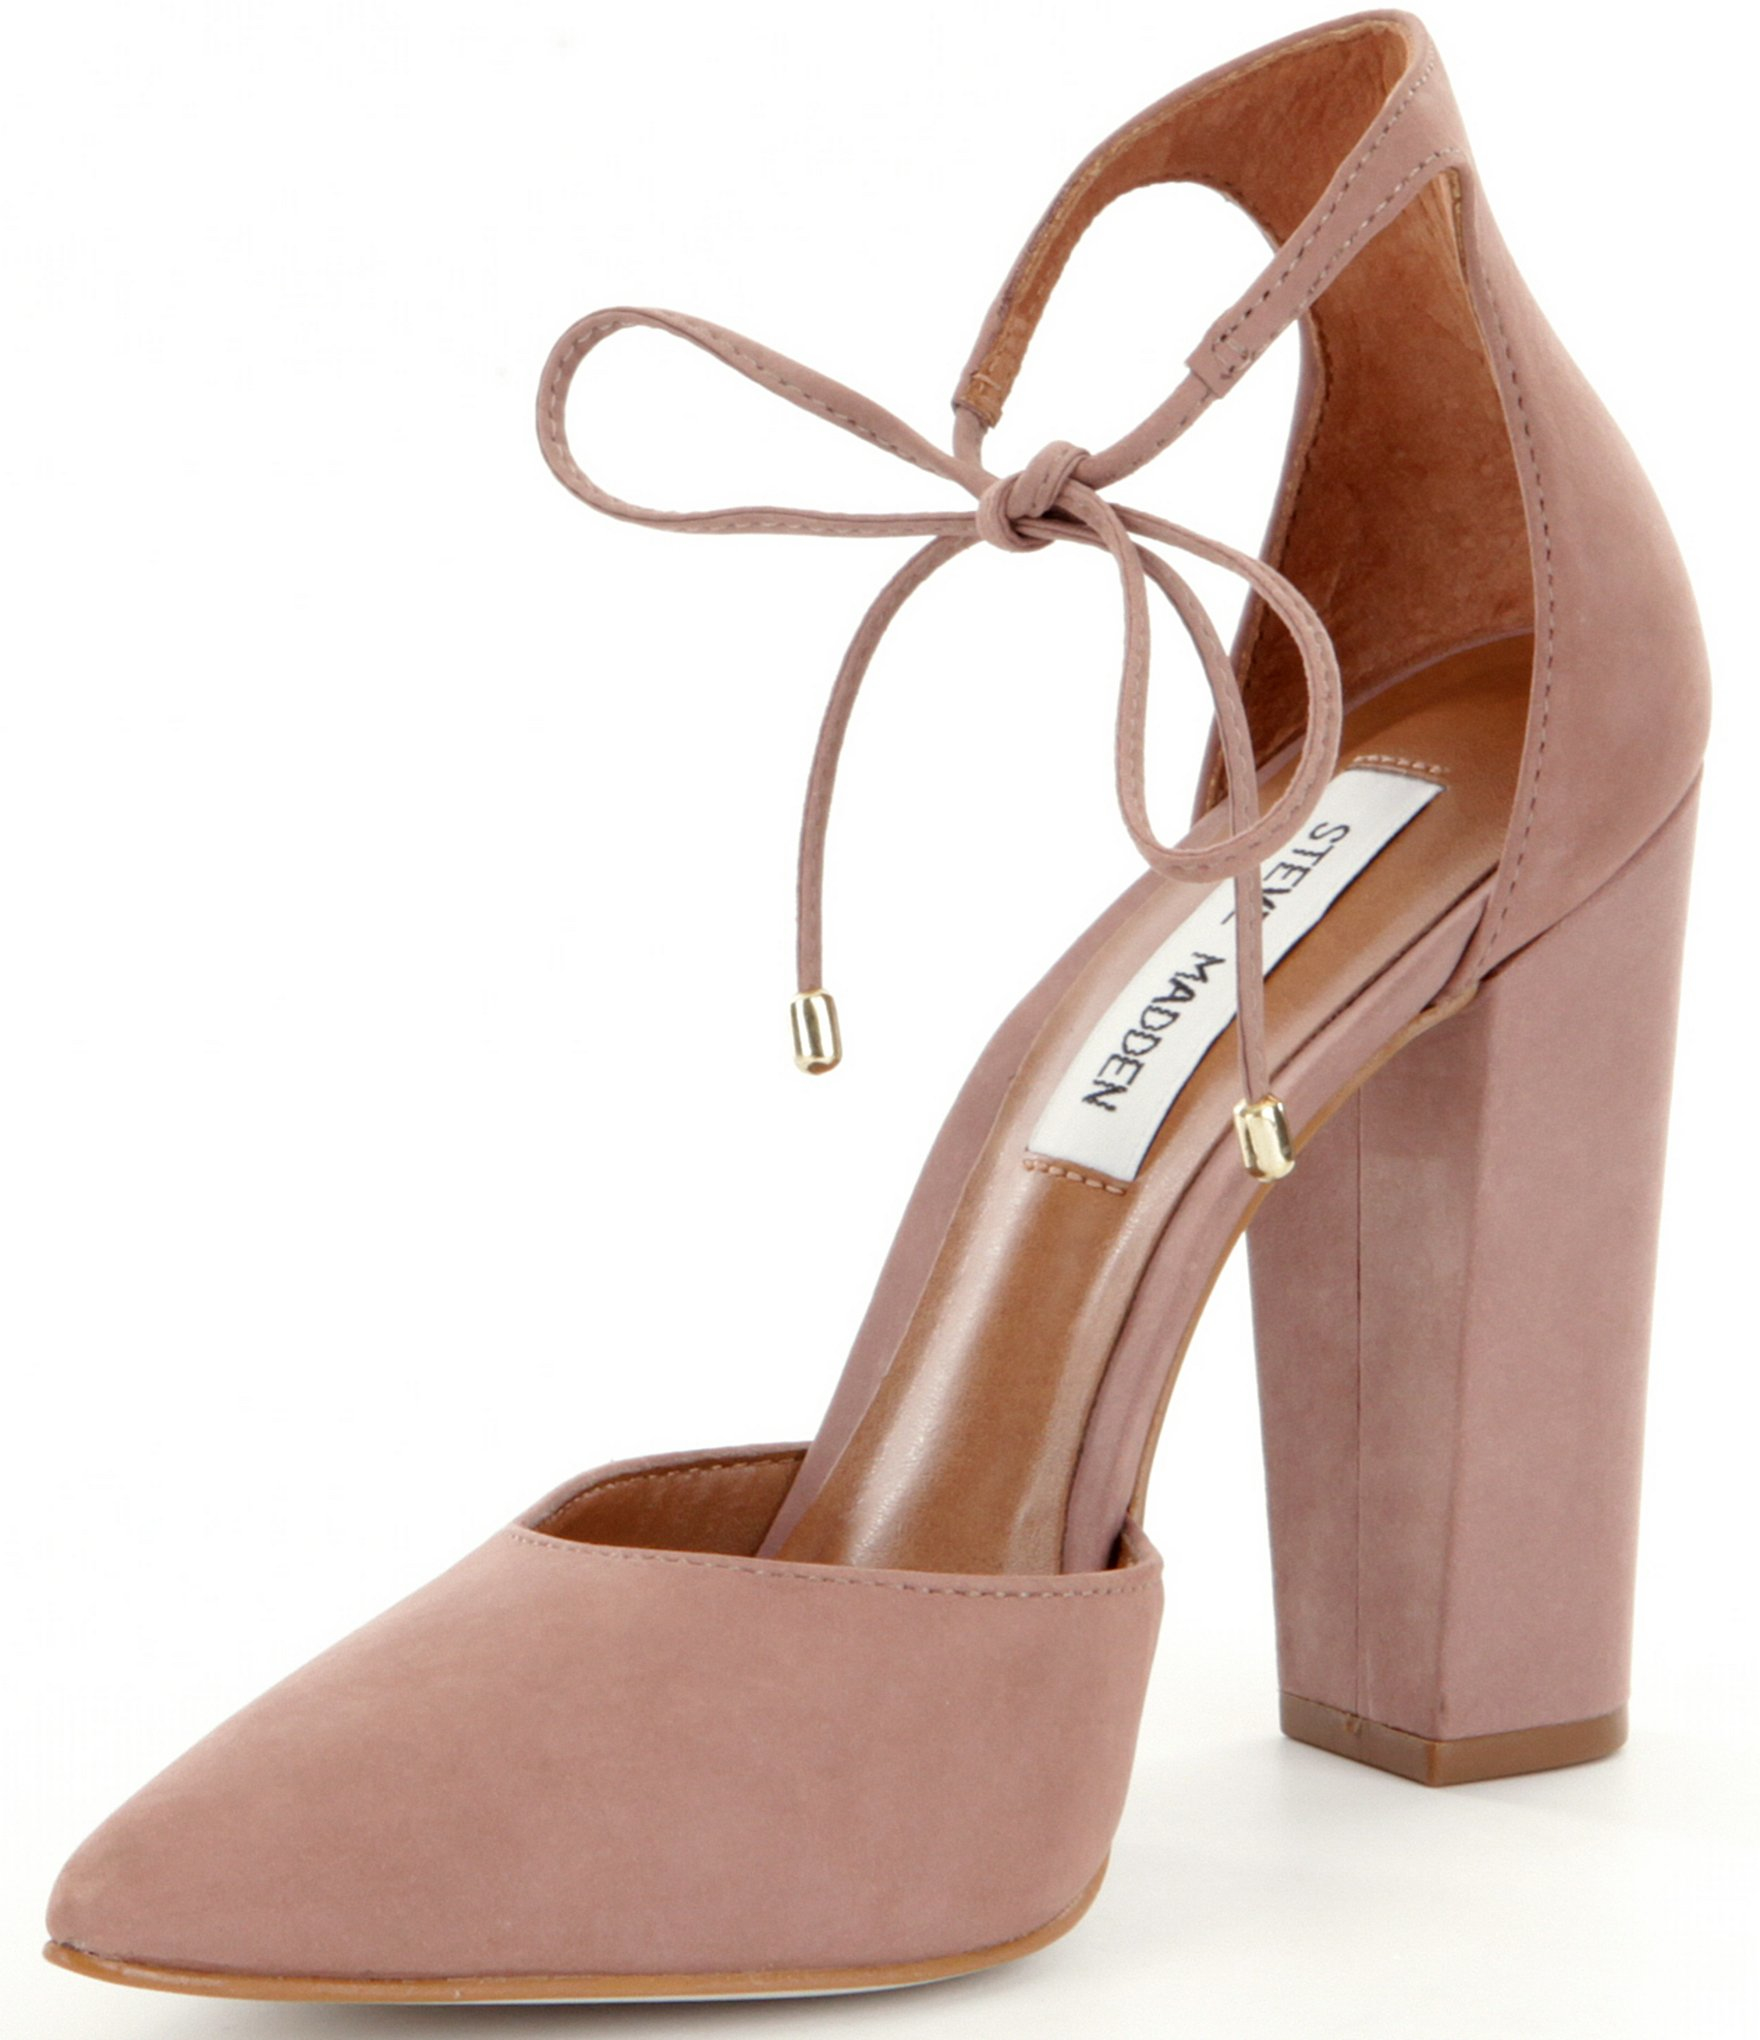 0db4886581f Lyst - Steve Madden Pampered Pointed-toe Tie Closure Pumps in Pink